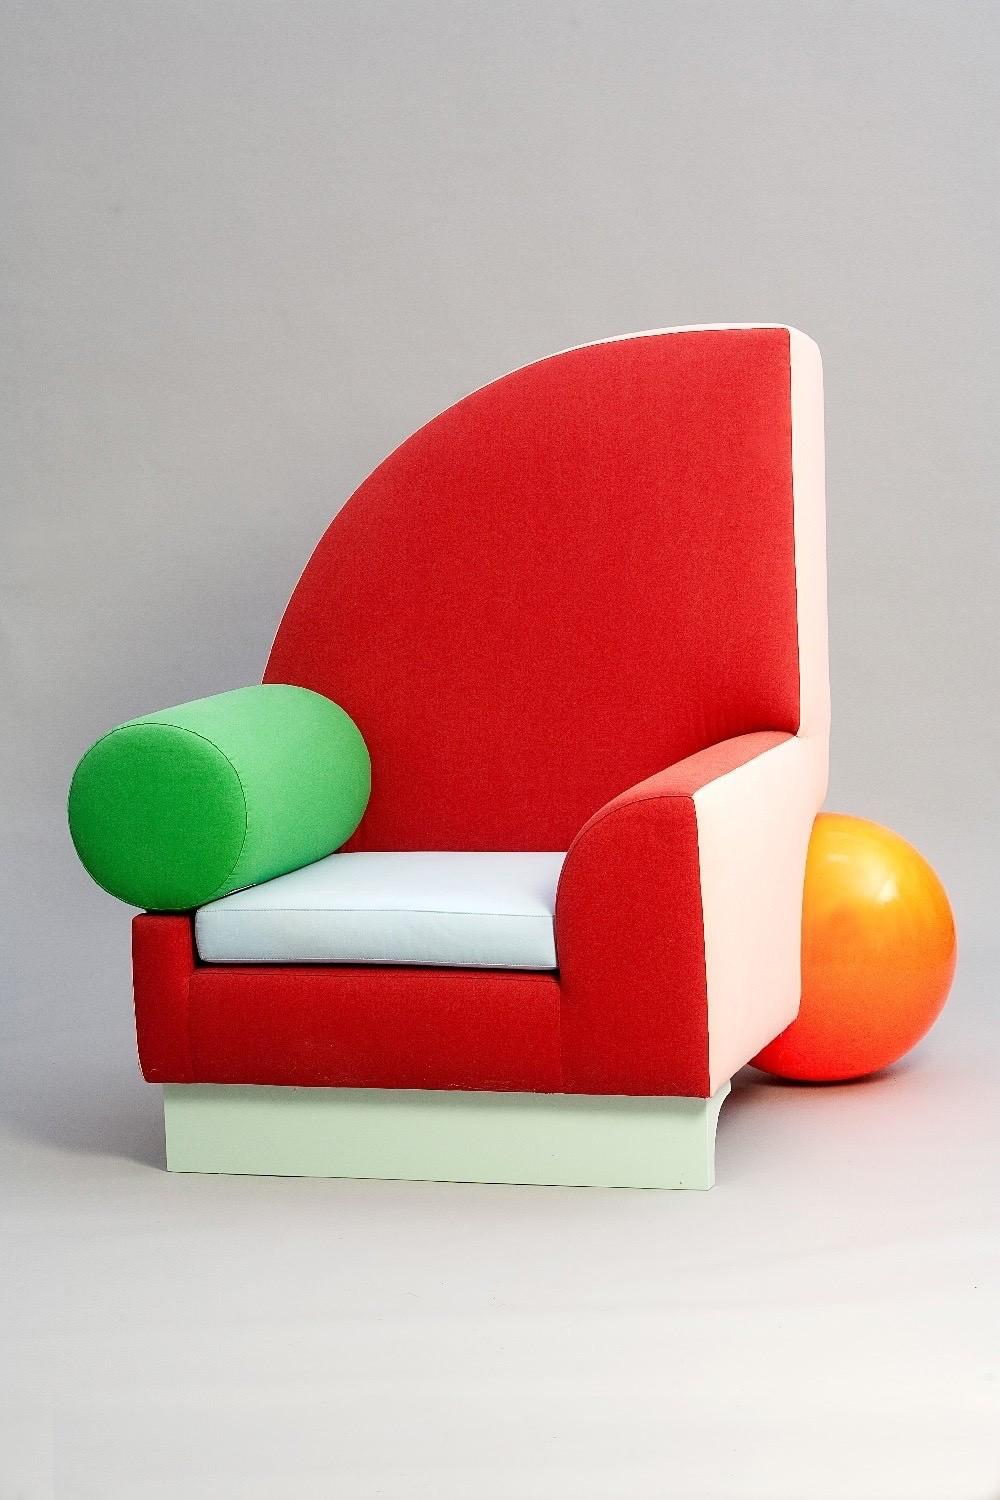 Iconic Chair Designs 1980s